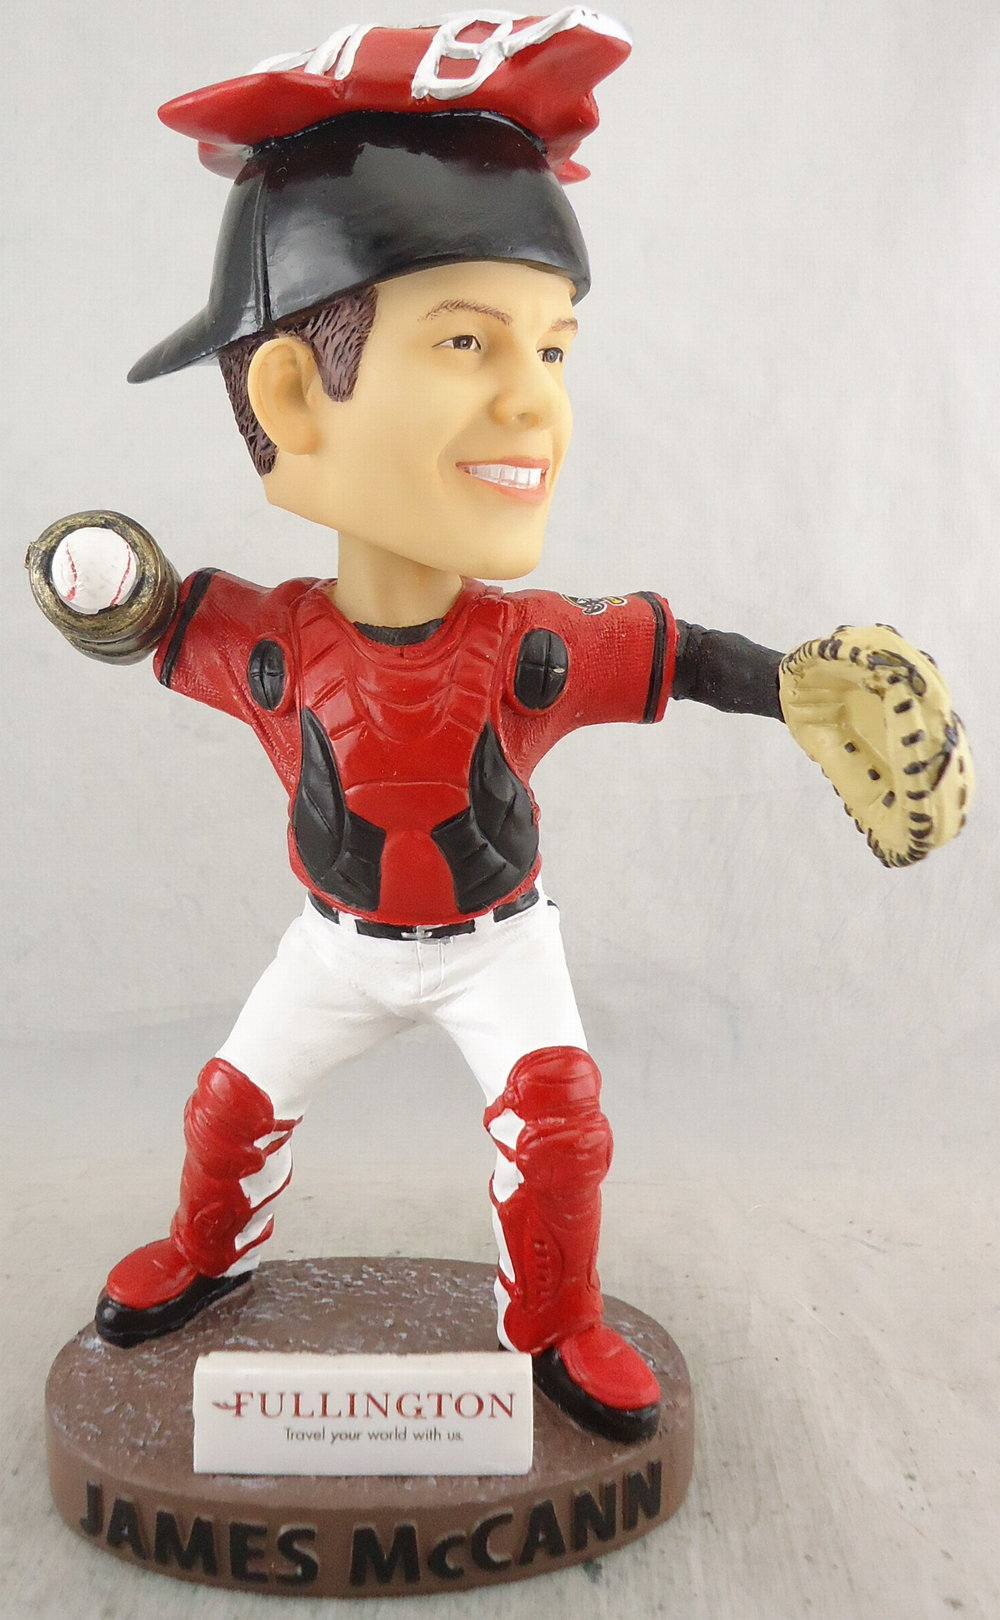 Erie SeaWolves - James McCann 112146, 7inch Bobblehead.jpg